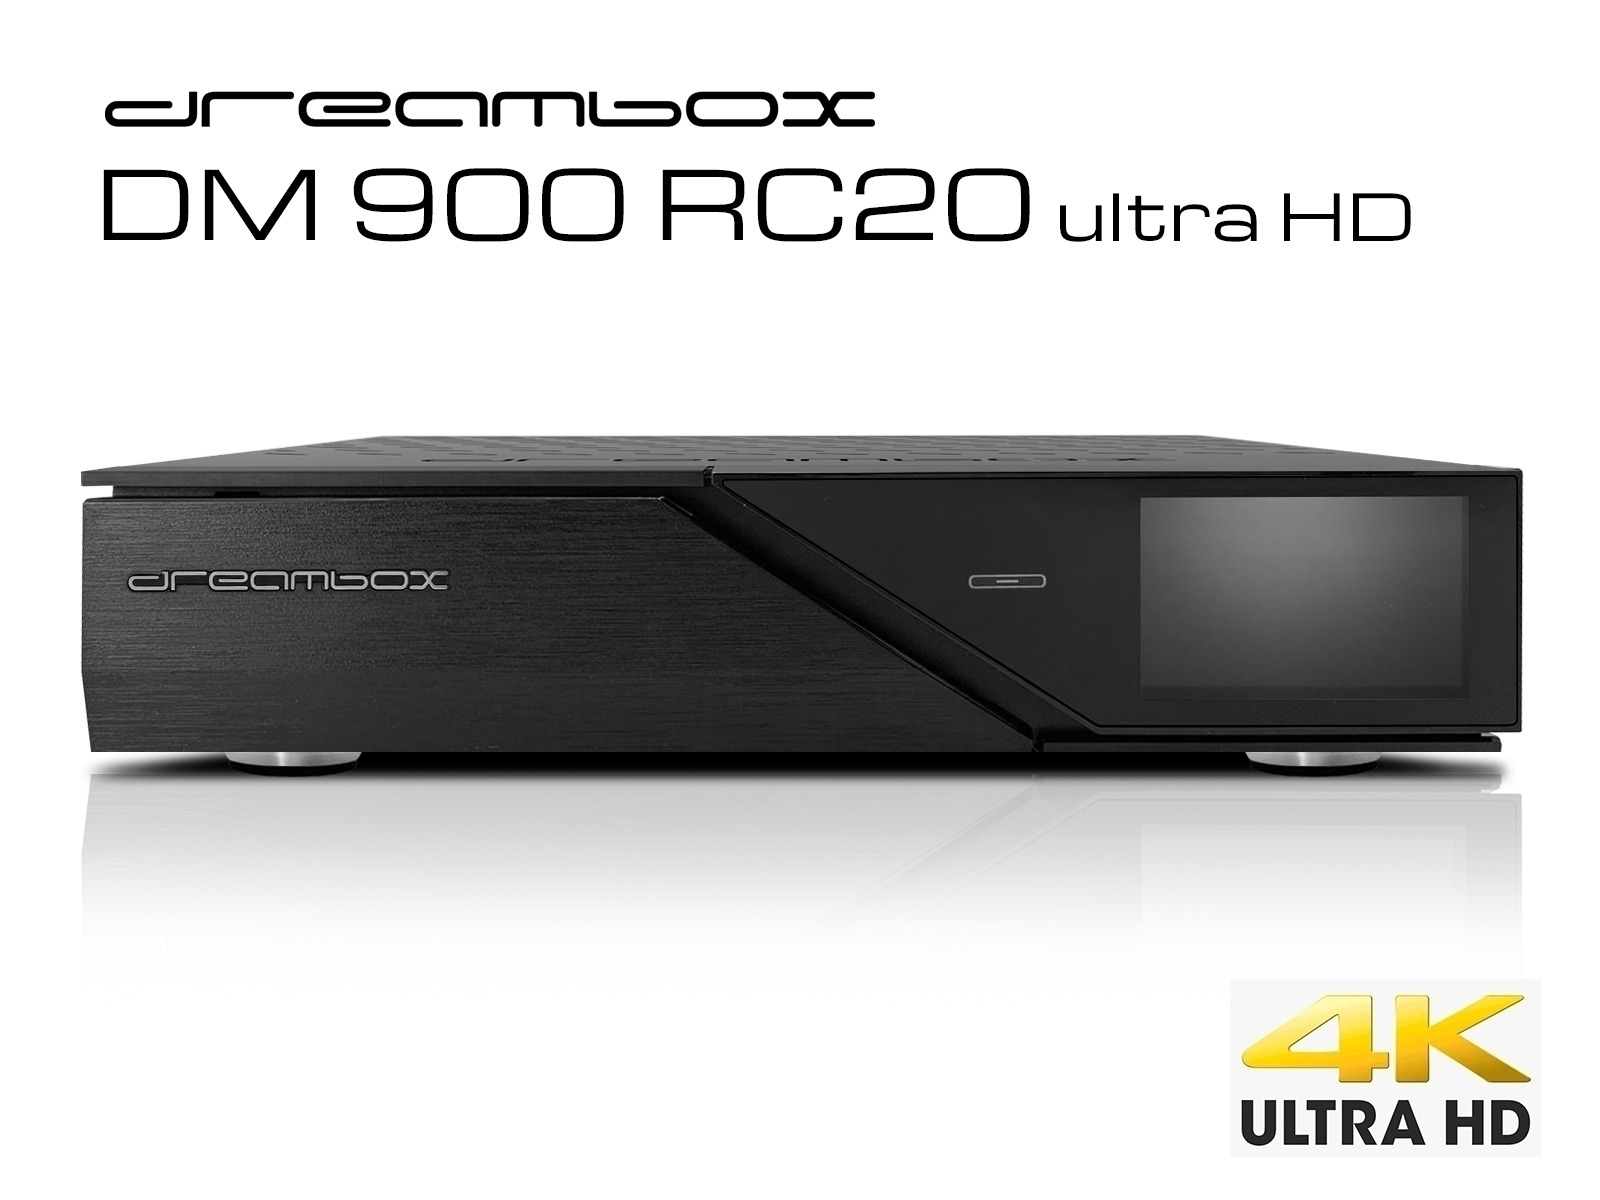 DreamBox DM900 ultraHD 4k